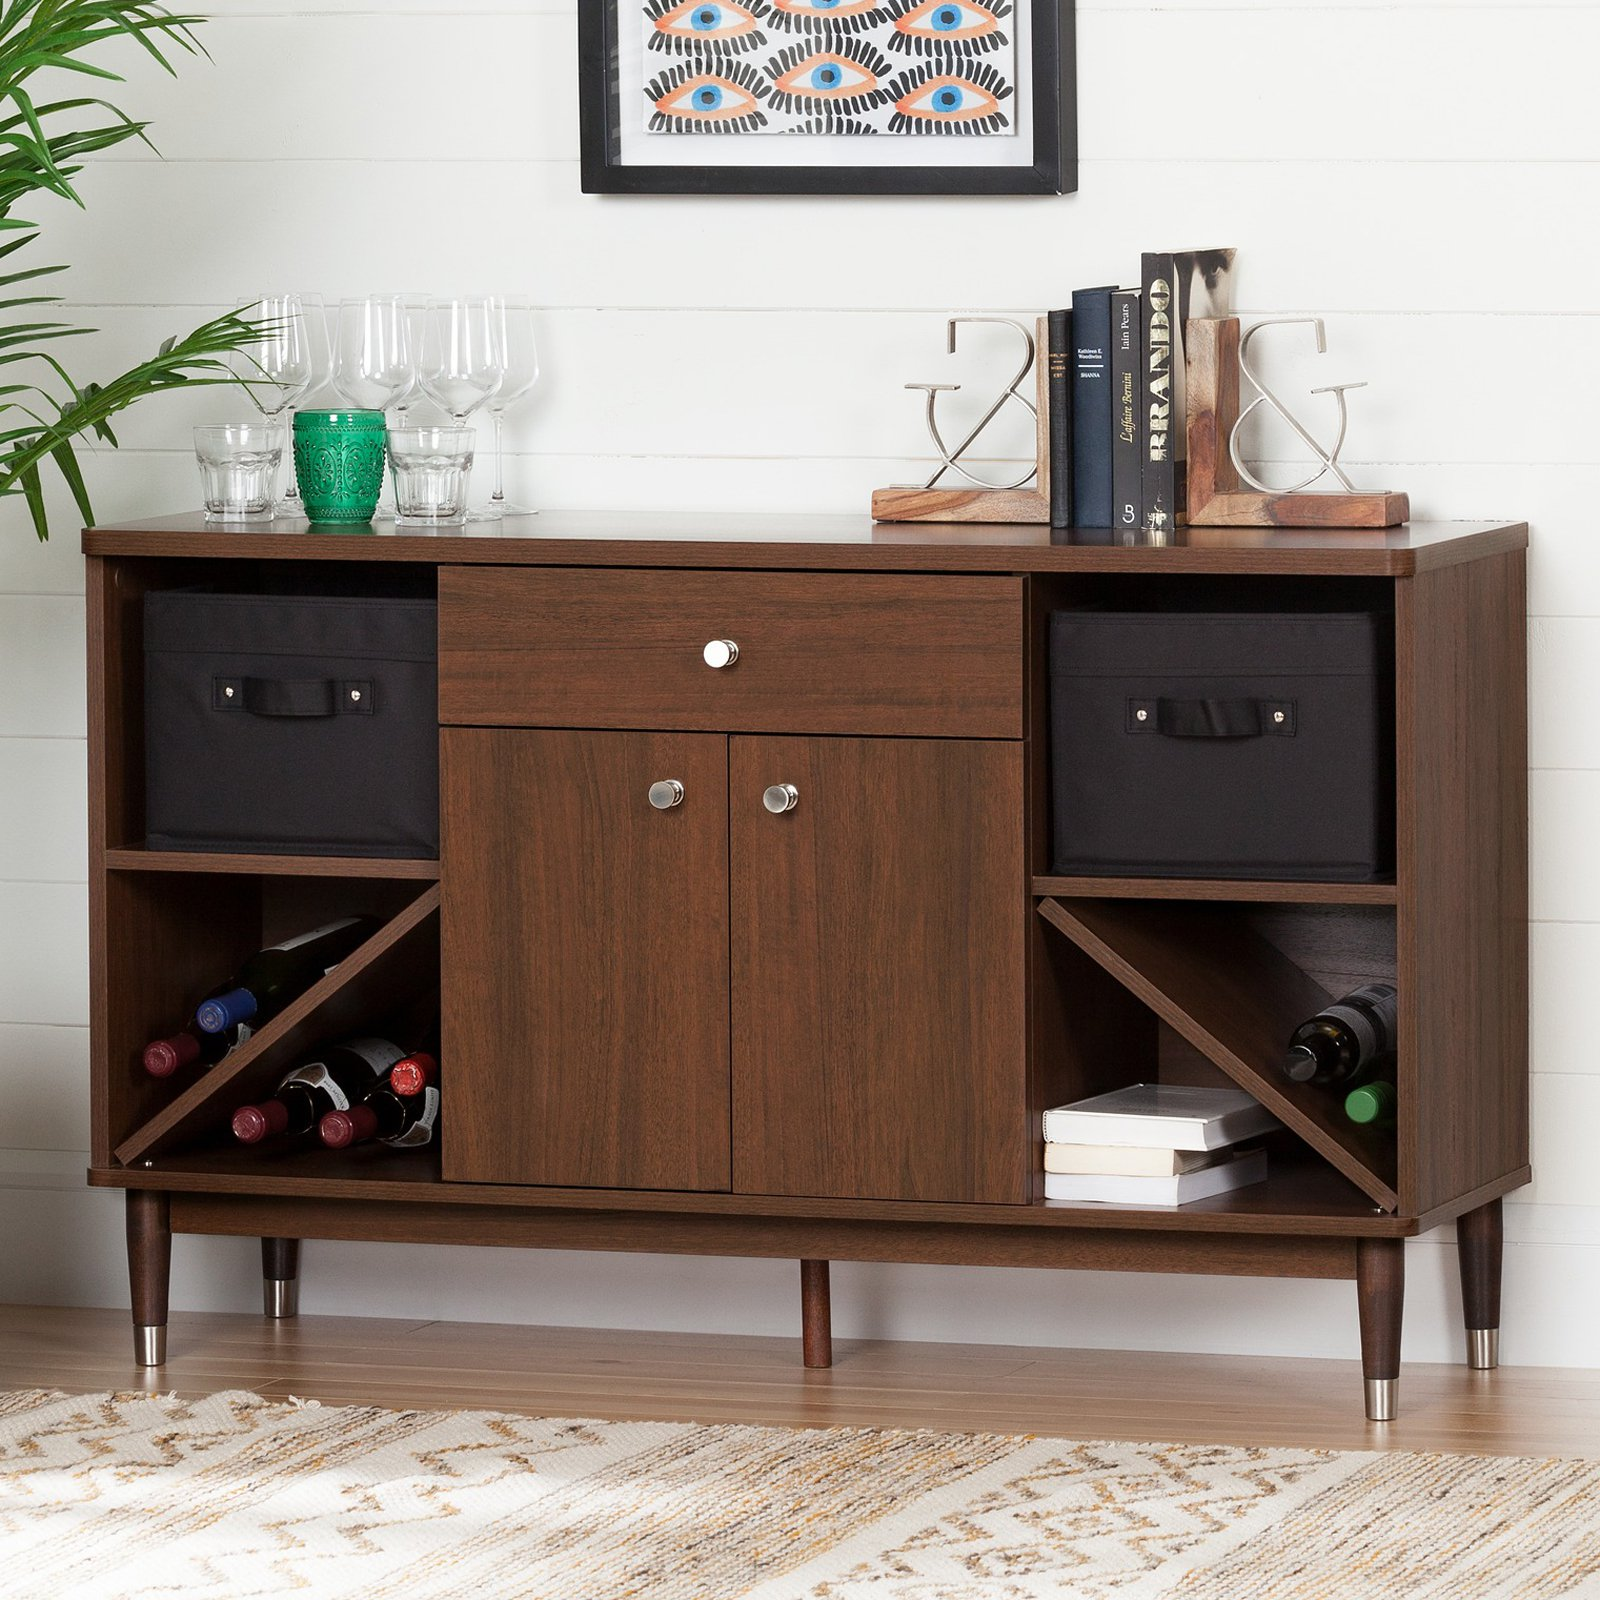 South Shore Olly Mid-Century modern Sideboard Storage Cabinet, Brown Walnut by South Shore